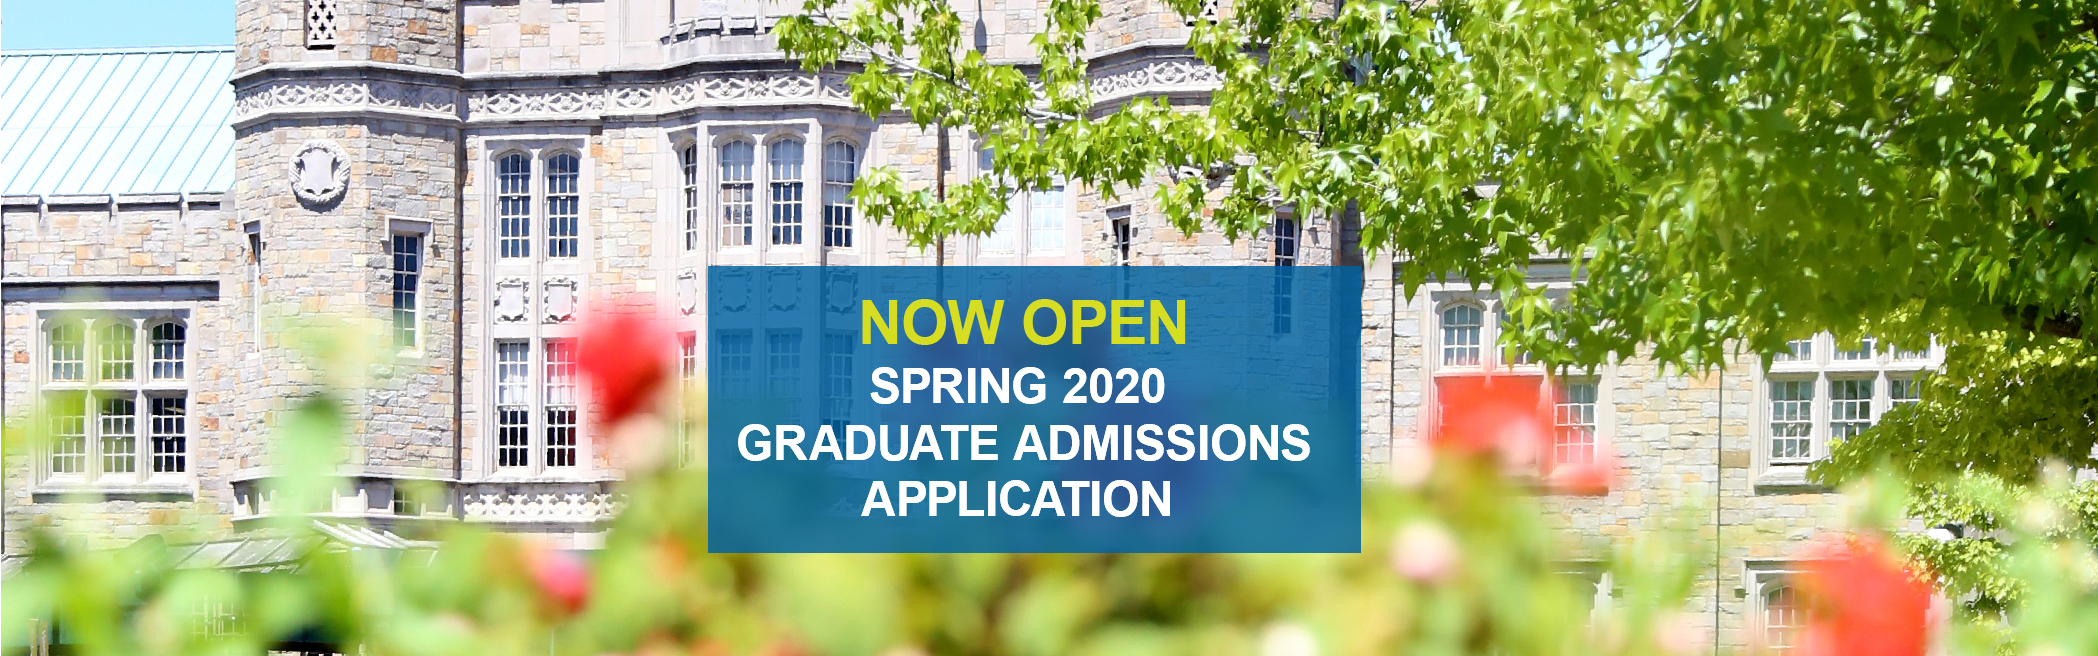 Banner for Spring 2020 Graduate Admissions